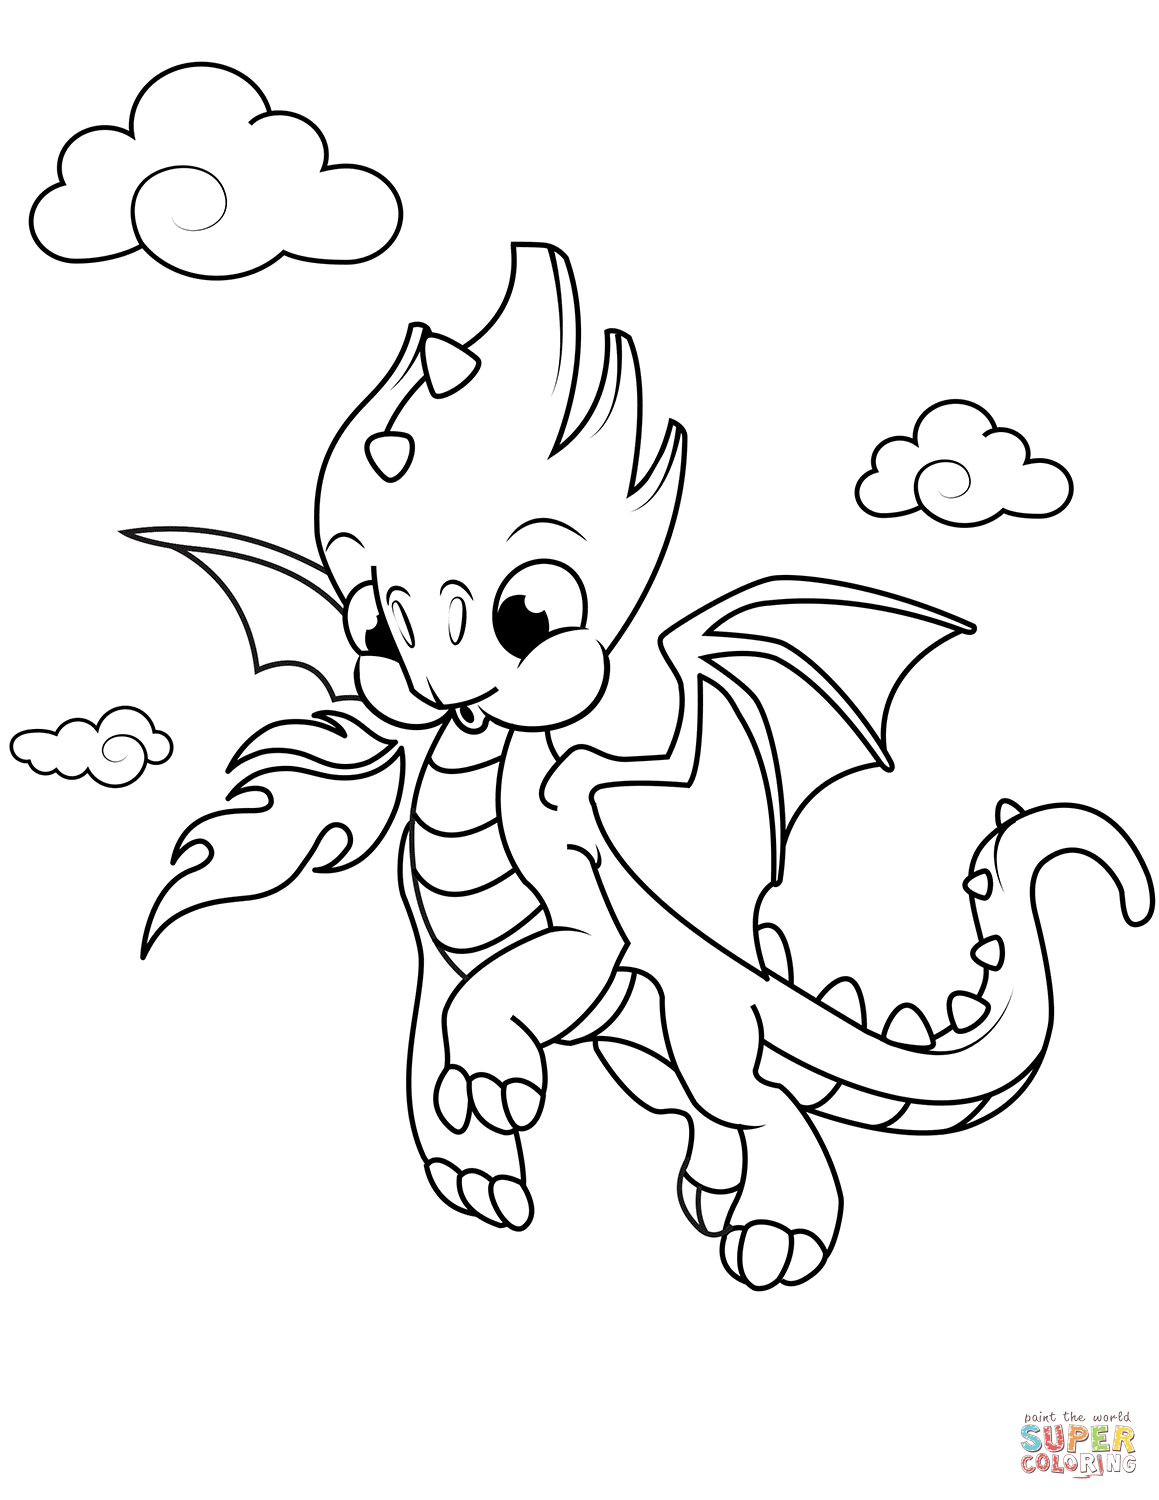 coloring pages of cute dragons cute dragon coloring pages get coloring pages pages dragons cute coloring of